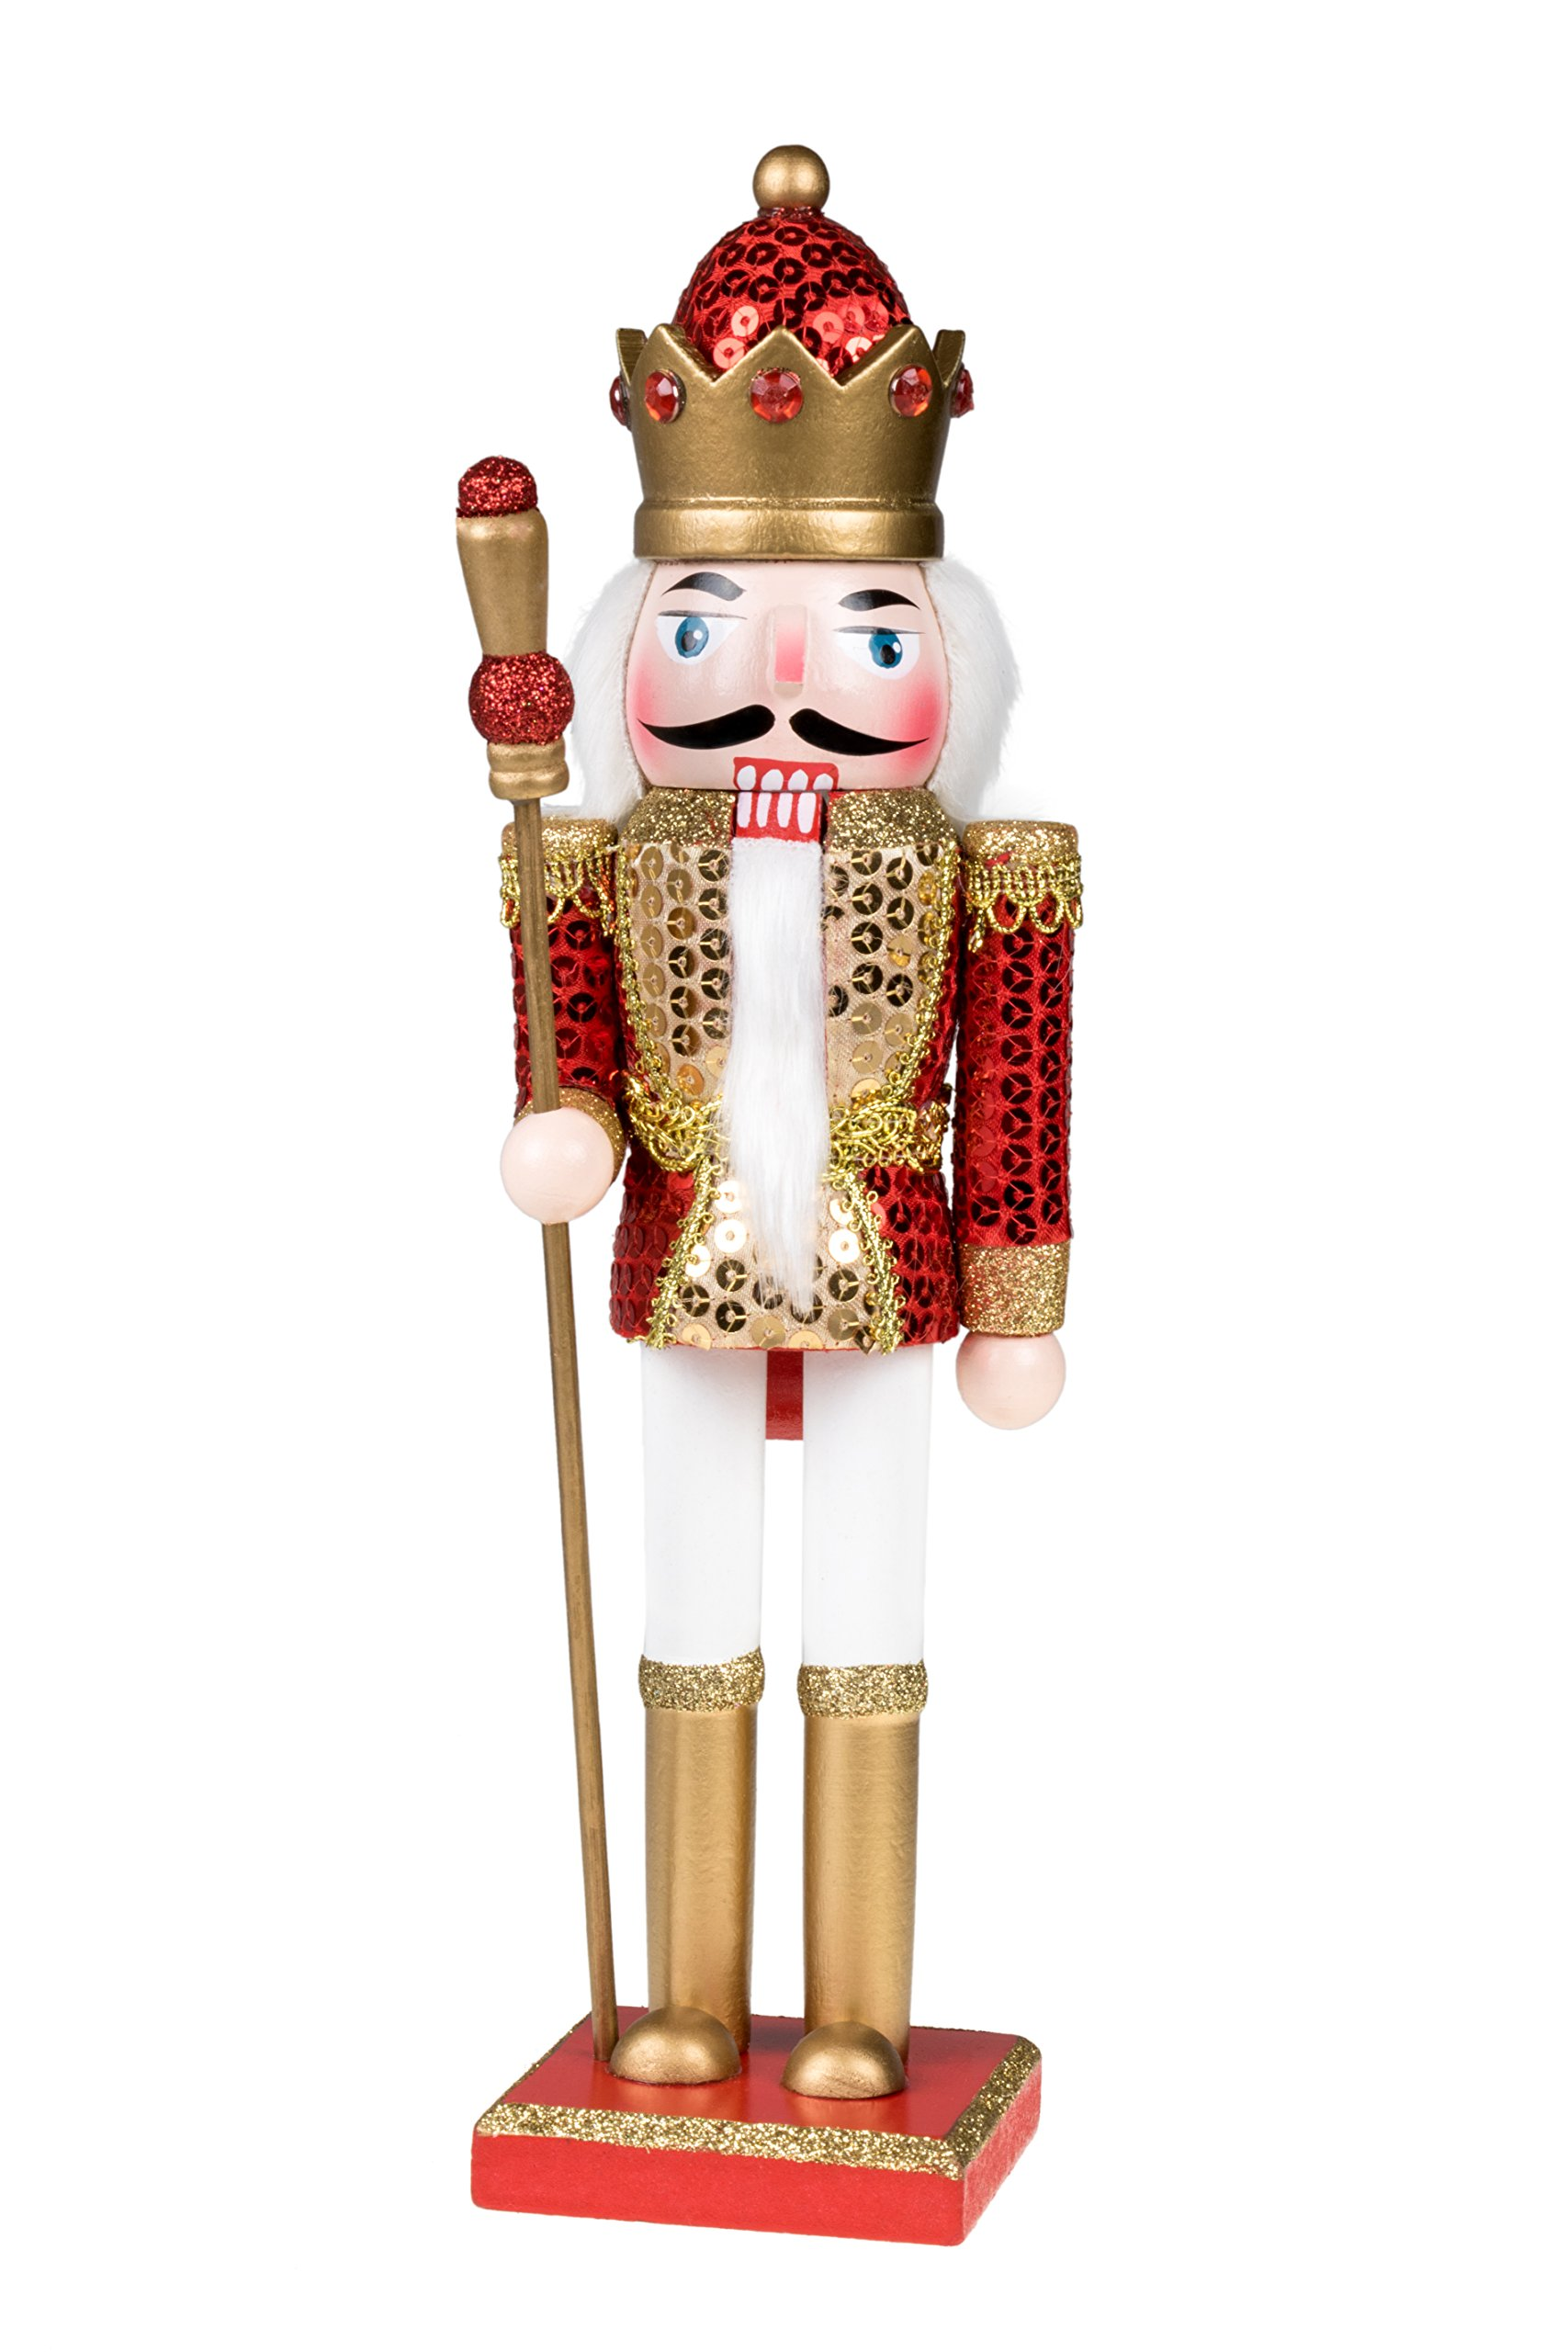 King Nutcracker | Traditional Christmas Decor | With King's Royal Scepter | Wearing Red and Gold Sequin Shirt | Perfect for Any Collection | Perfect for Shelves & Tables | 100% Wood | 12'' Tall by Clever Creations (Image #1)